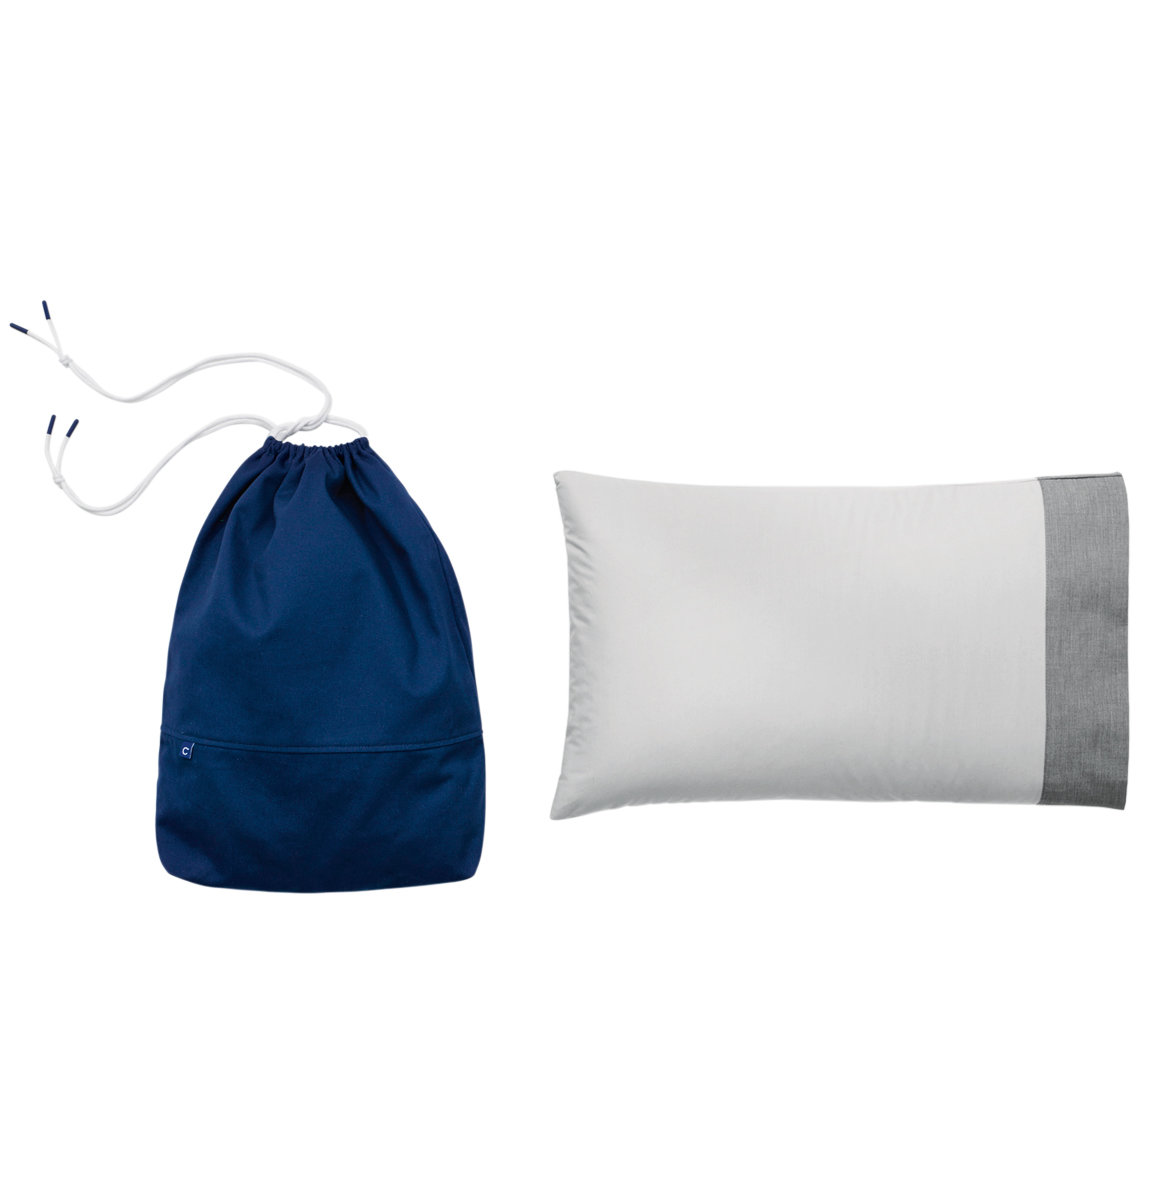 Casper Nap Pillow